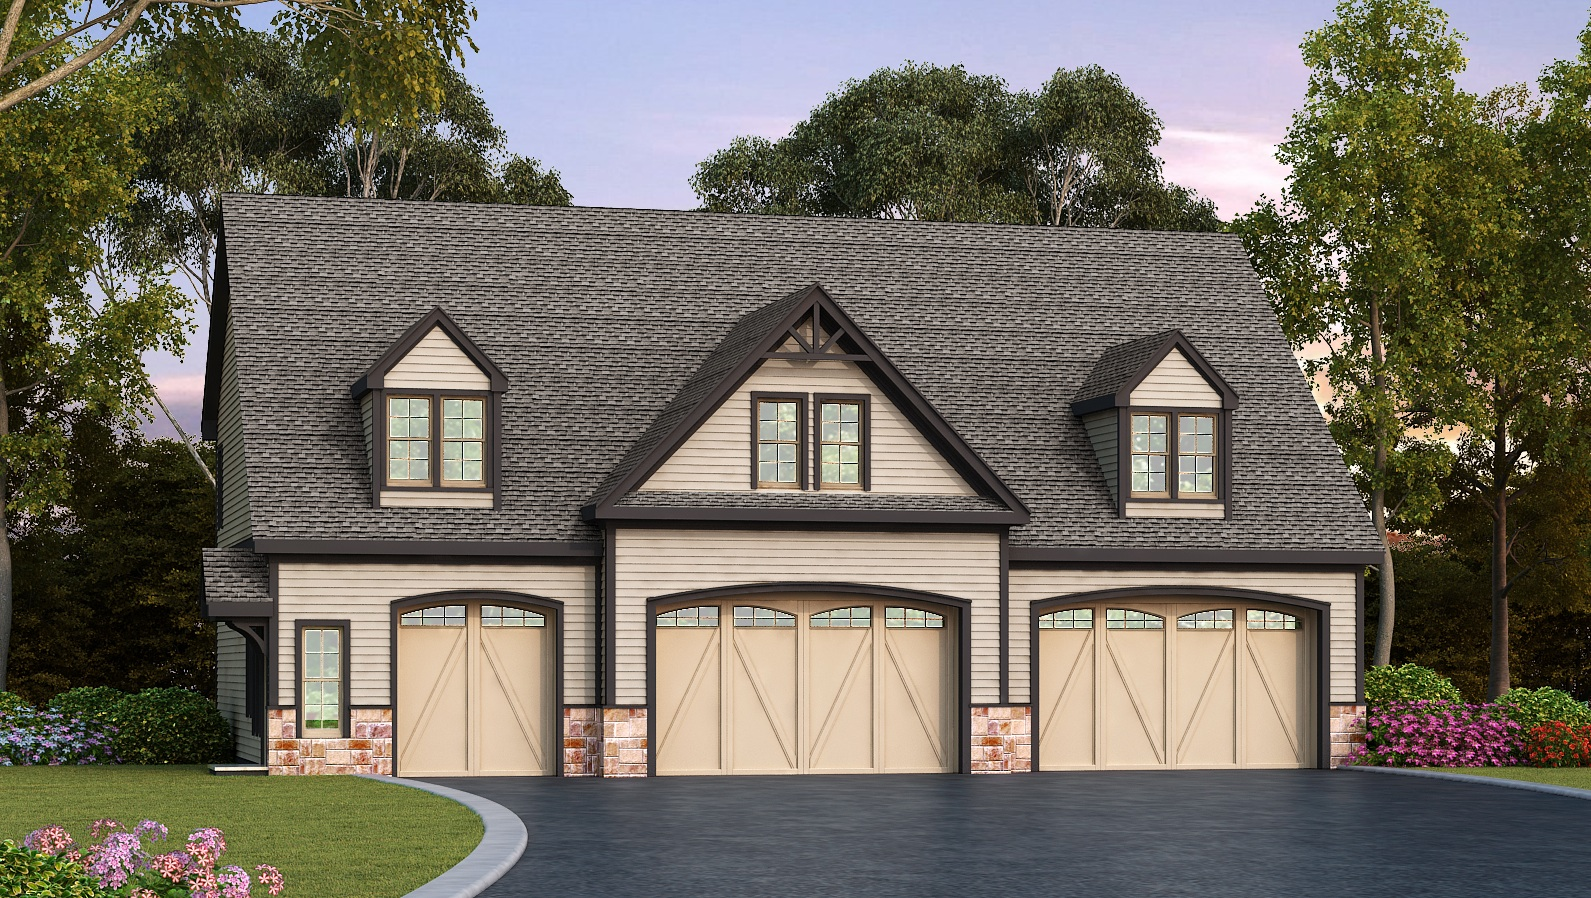 small resolution of residential 5 car detached garage plan 29870rl architectural house plans with detached garage on wiring house to detached garage